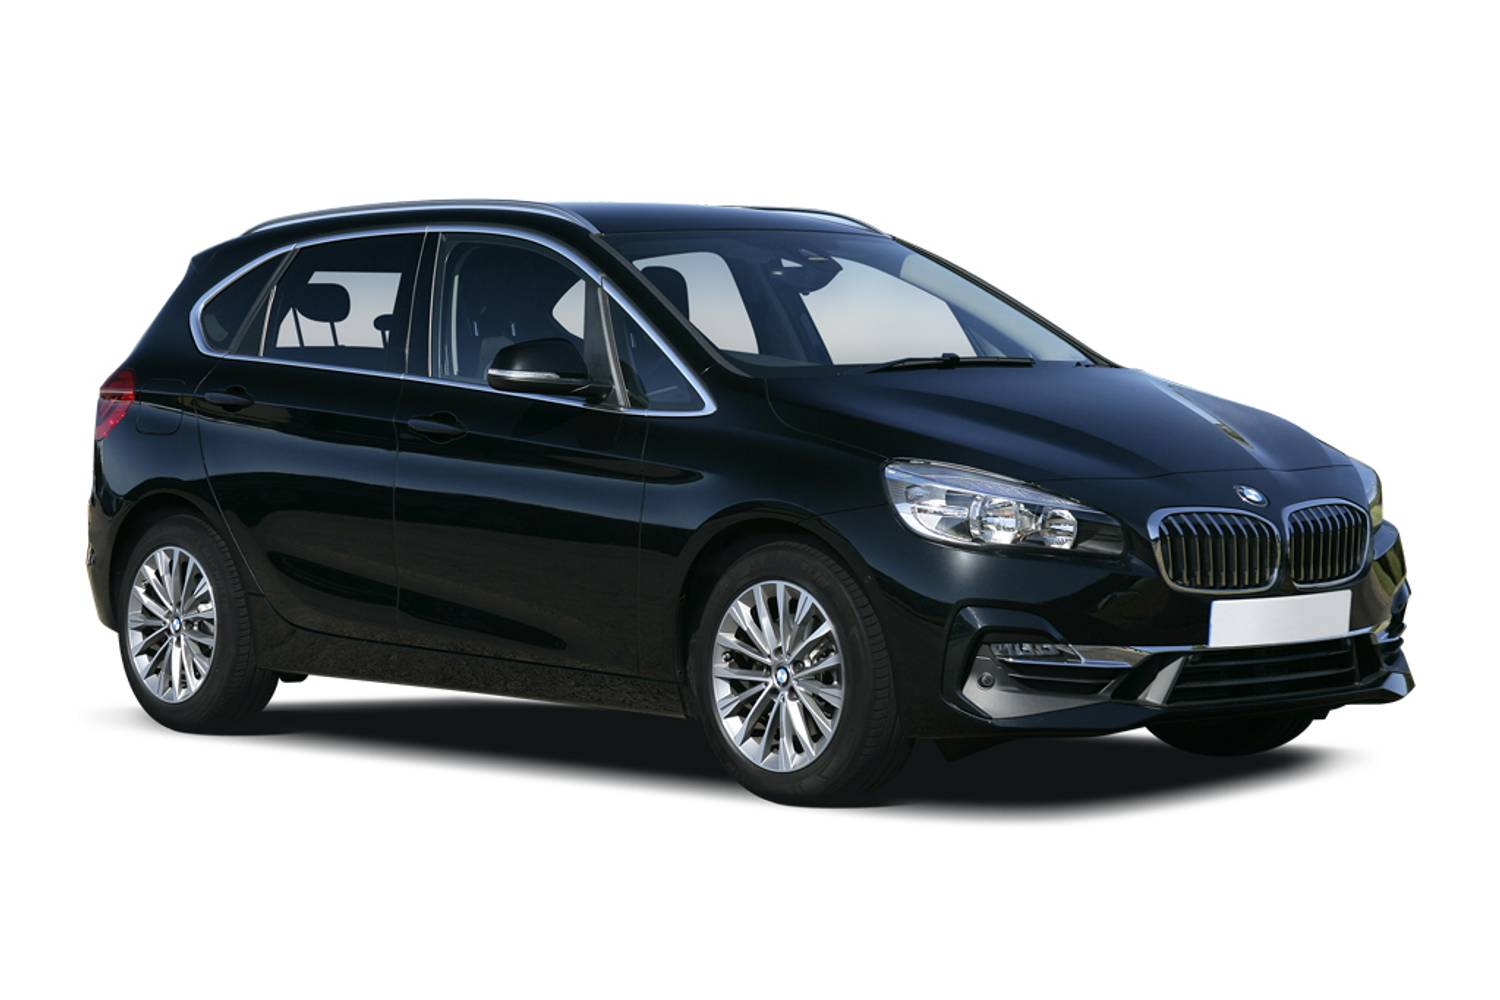 BMW 2 Series Active Tourer 5dr Front Three Quarter